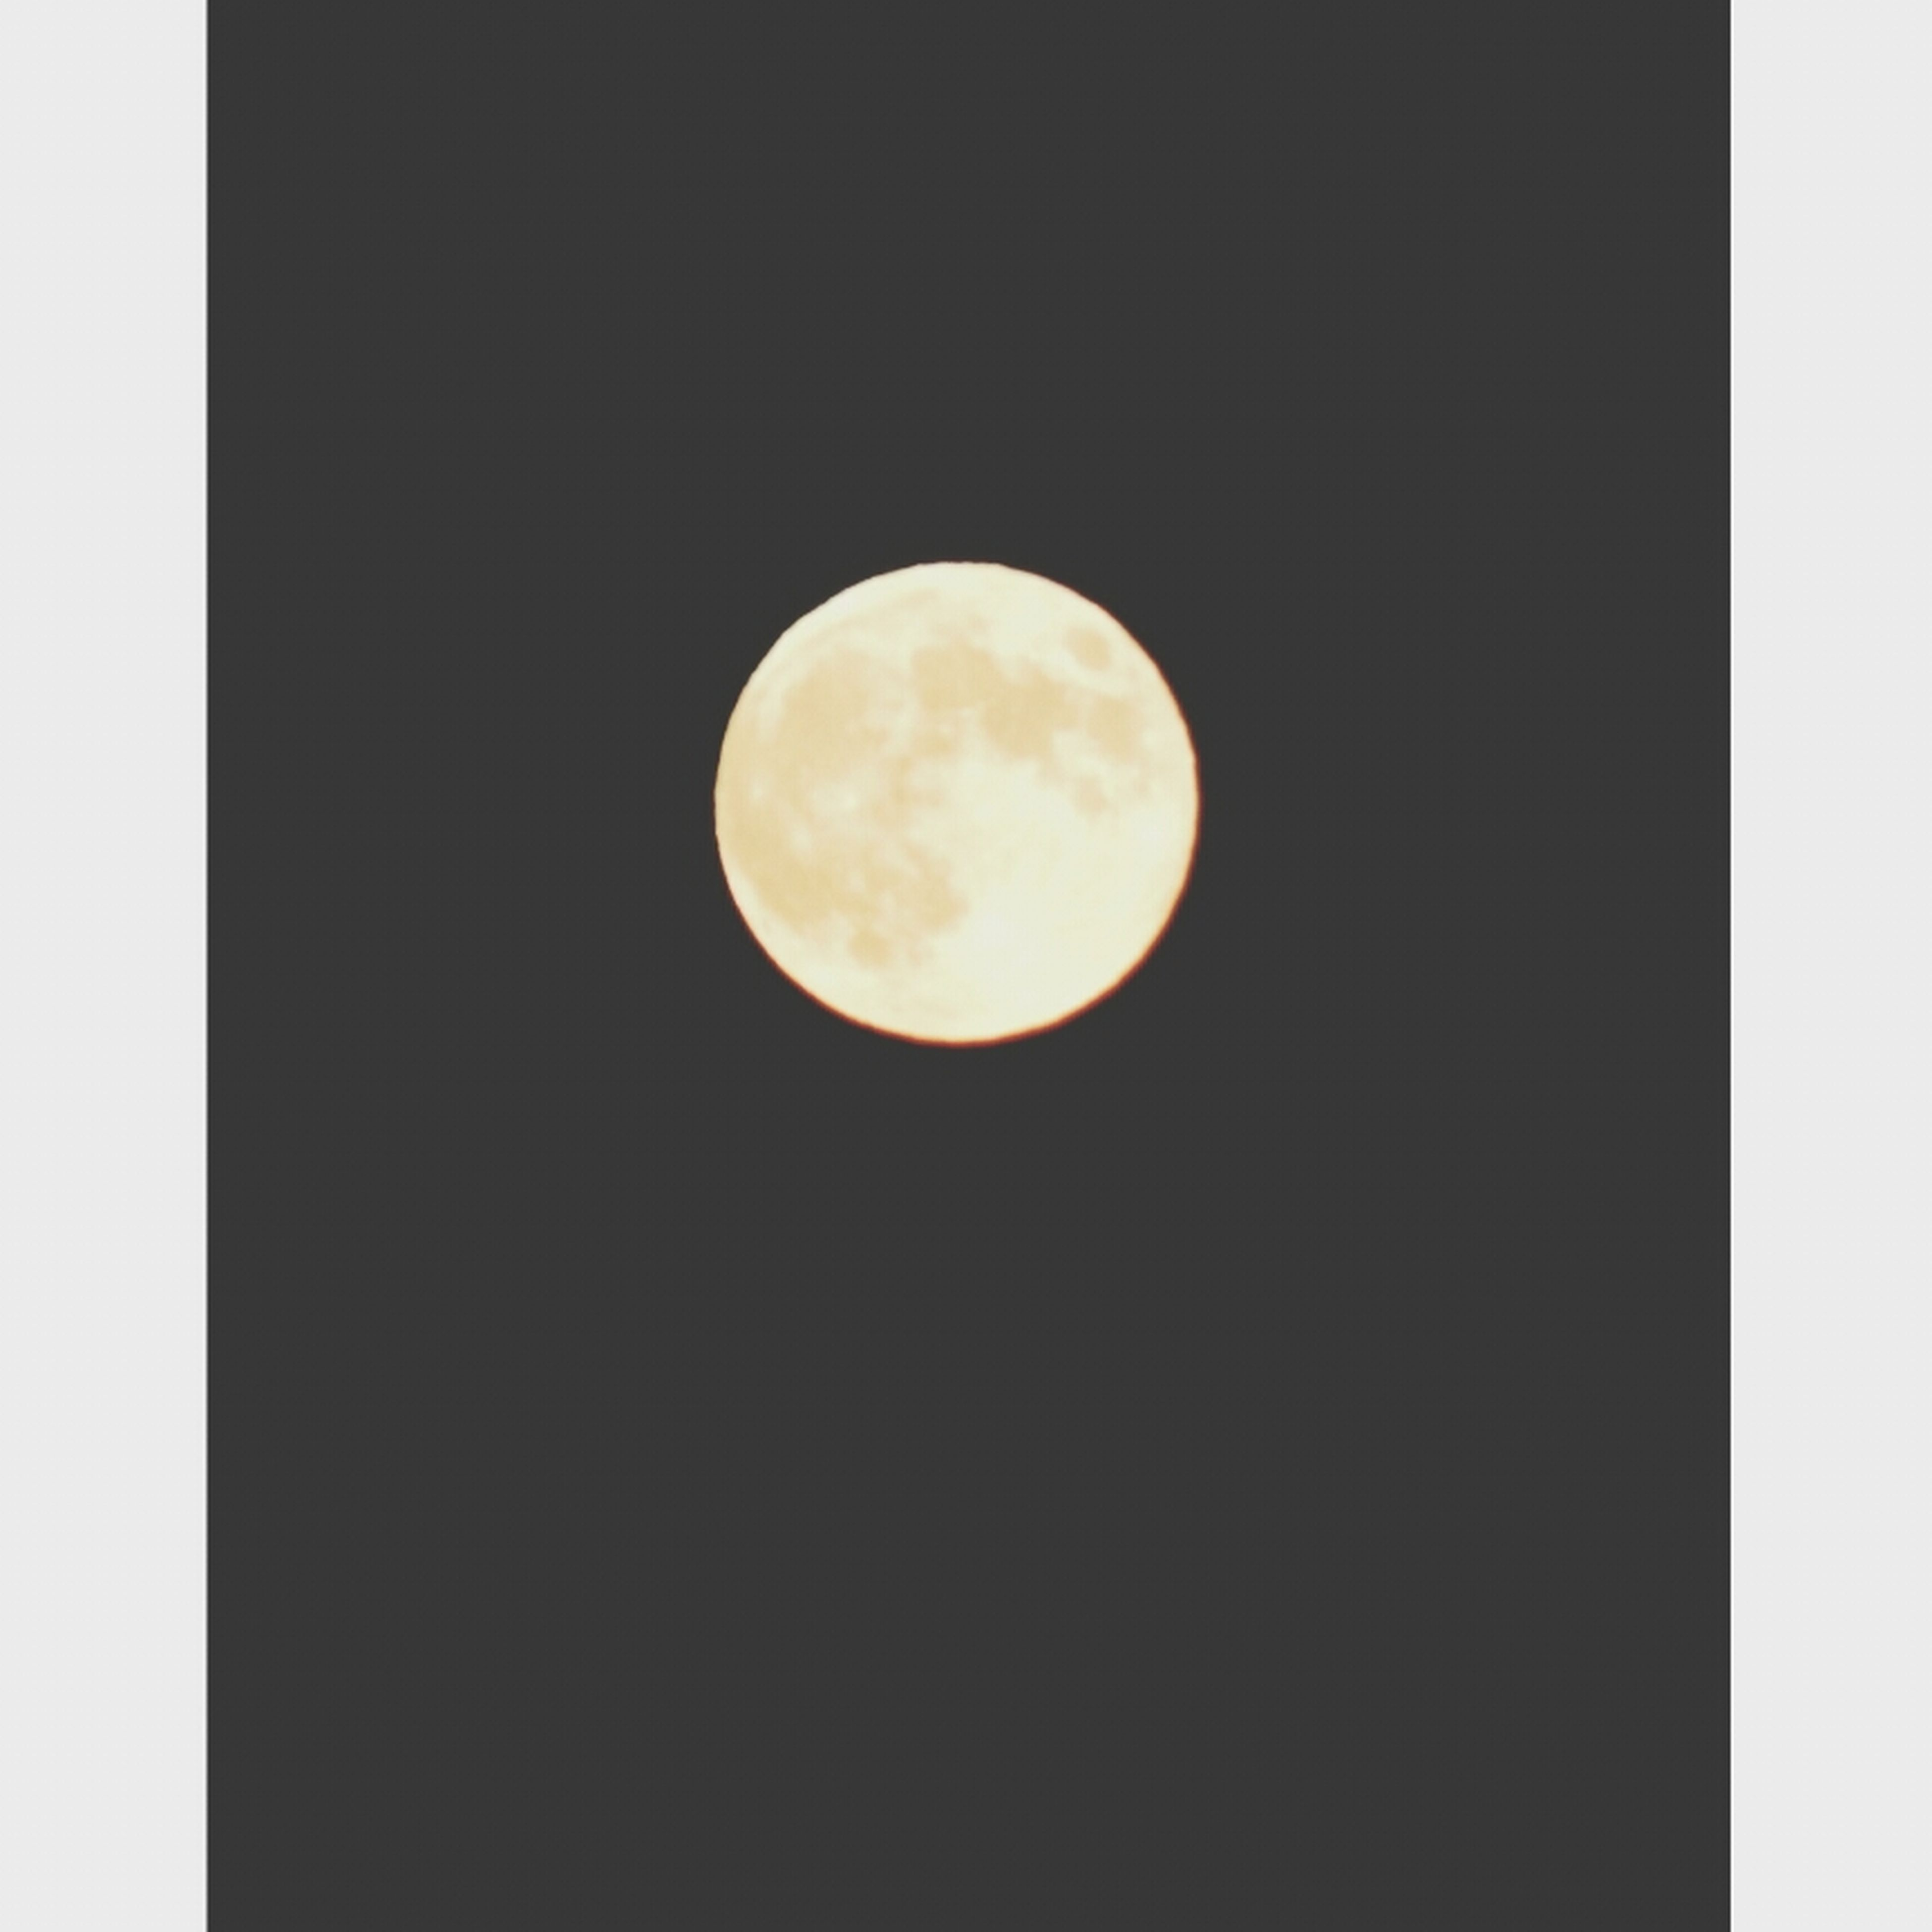 moon, astronomy, full moon, night, planetary moon, circle, low angle view, copy space, moon surface, beauty in nature, tranquility, scenics, tranquil scene, space exploration, nature, clear sky, discovery, sky, dark, sphere